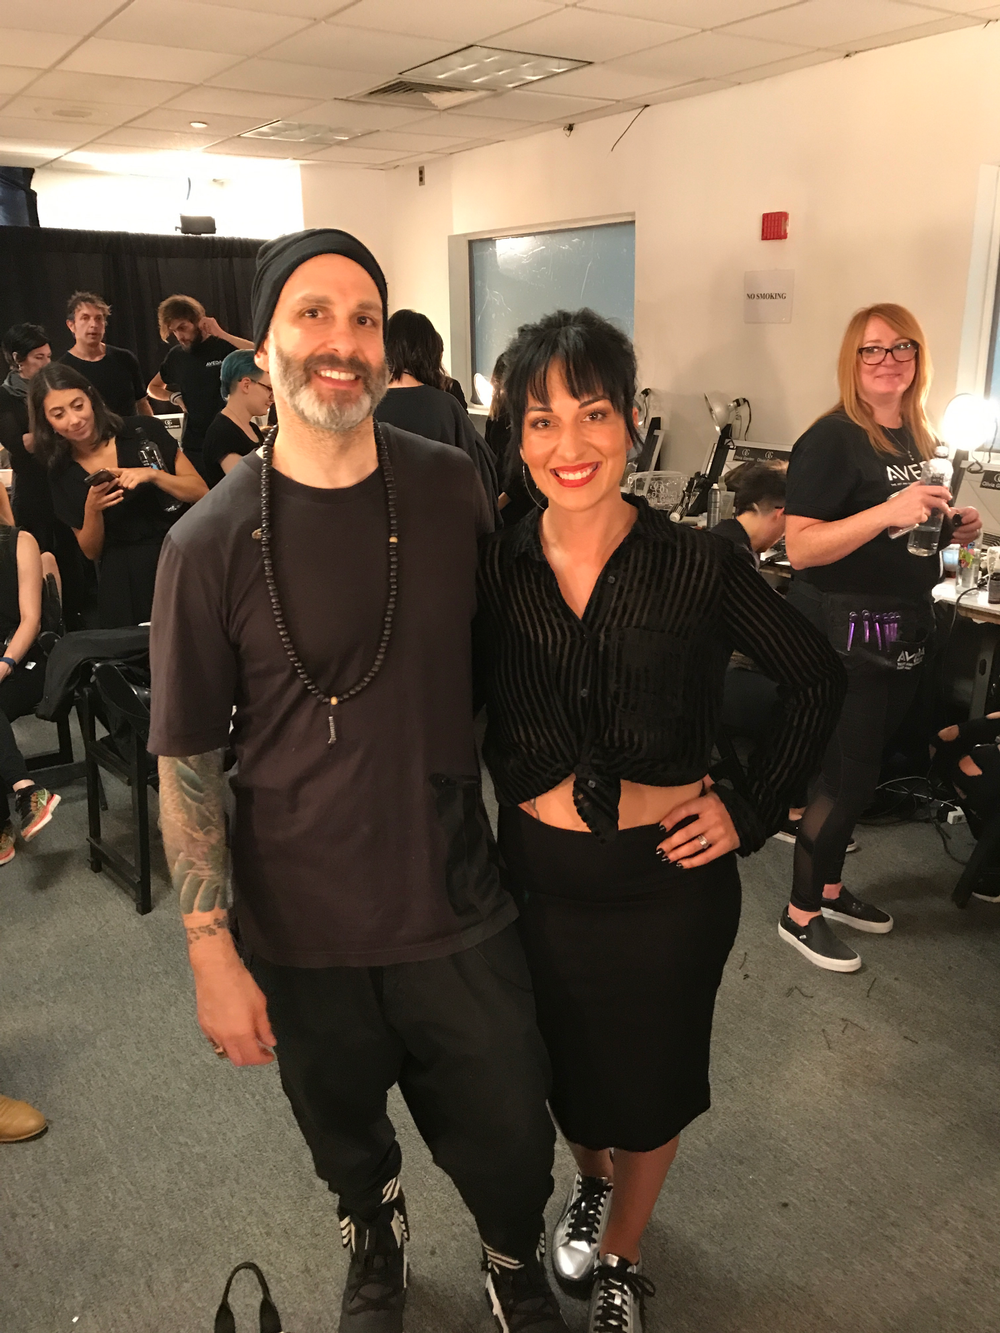 Aveda's Jon Reyman and Sarah Shultz behind the scenes at the Leanne Marshall show, NYFW, SS18.